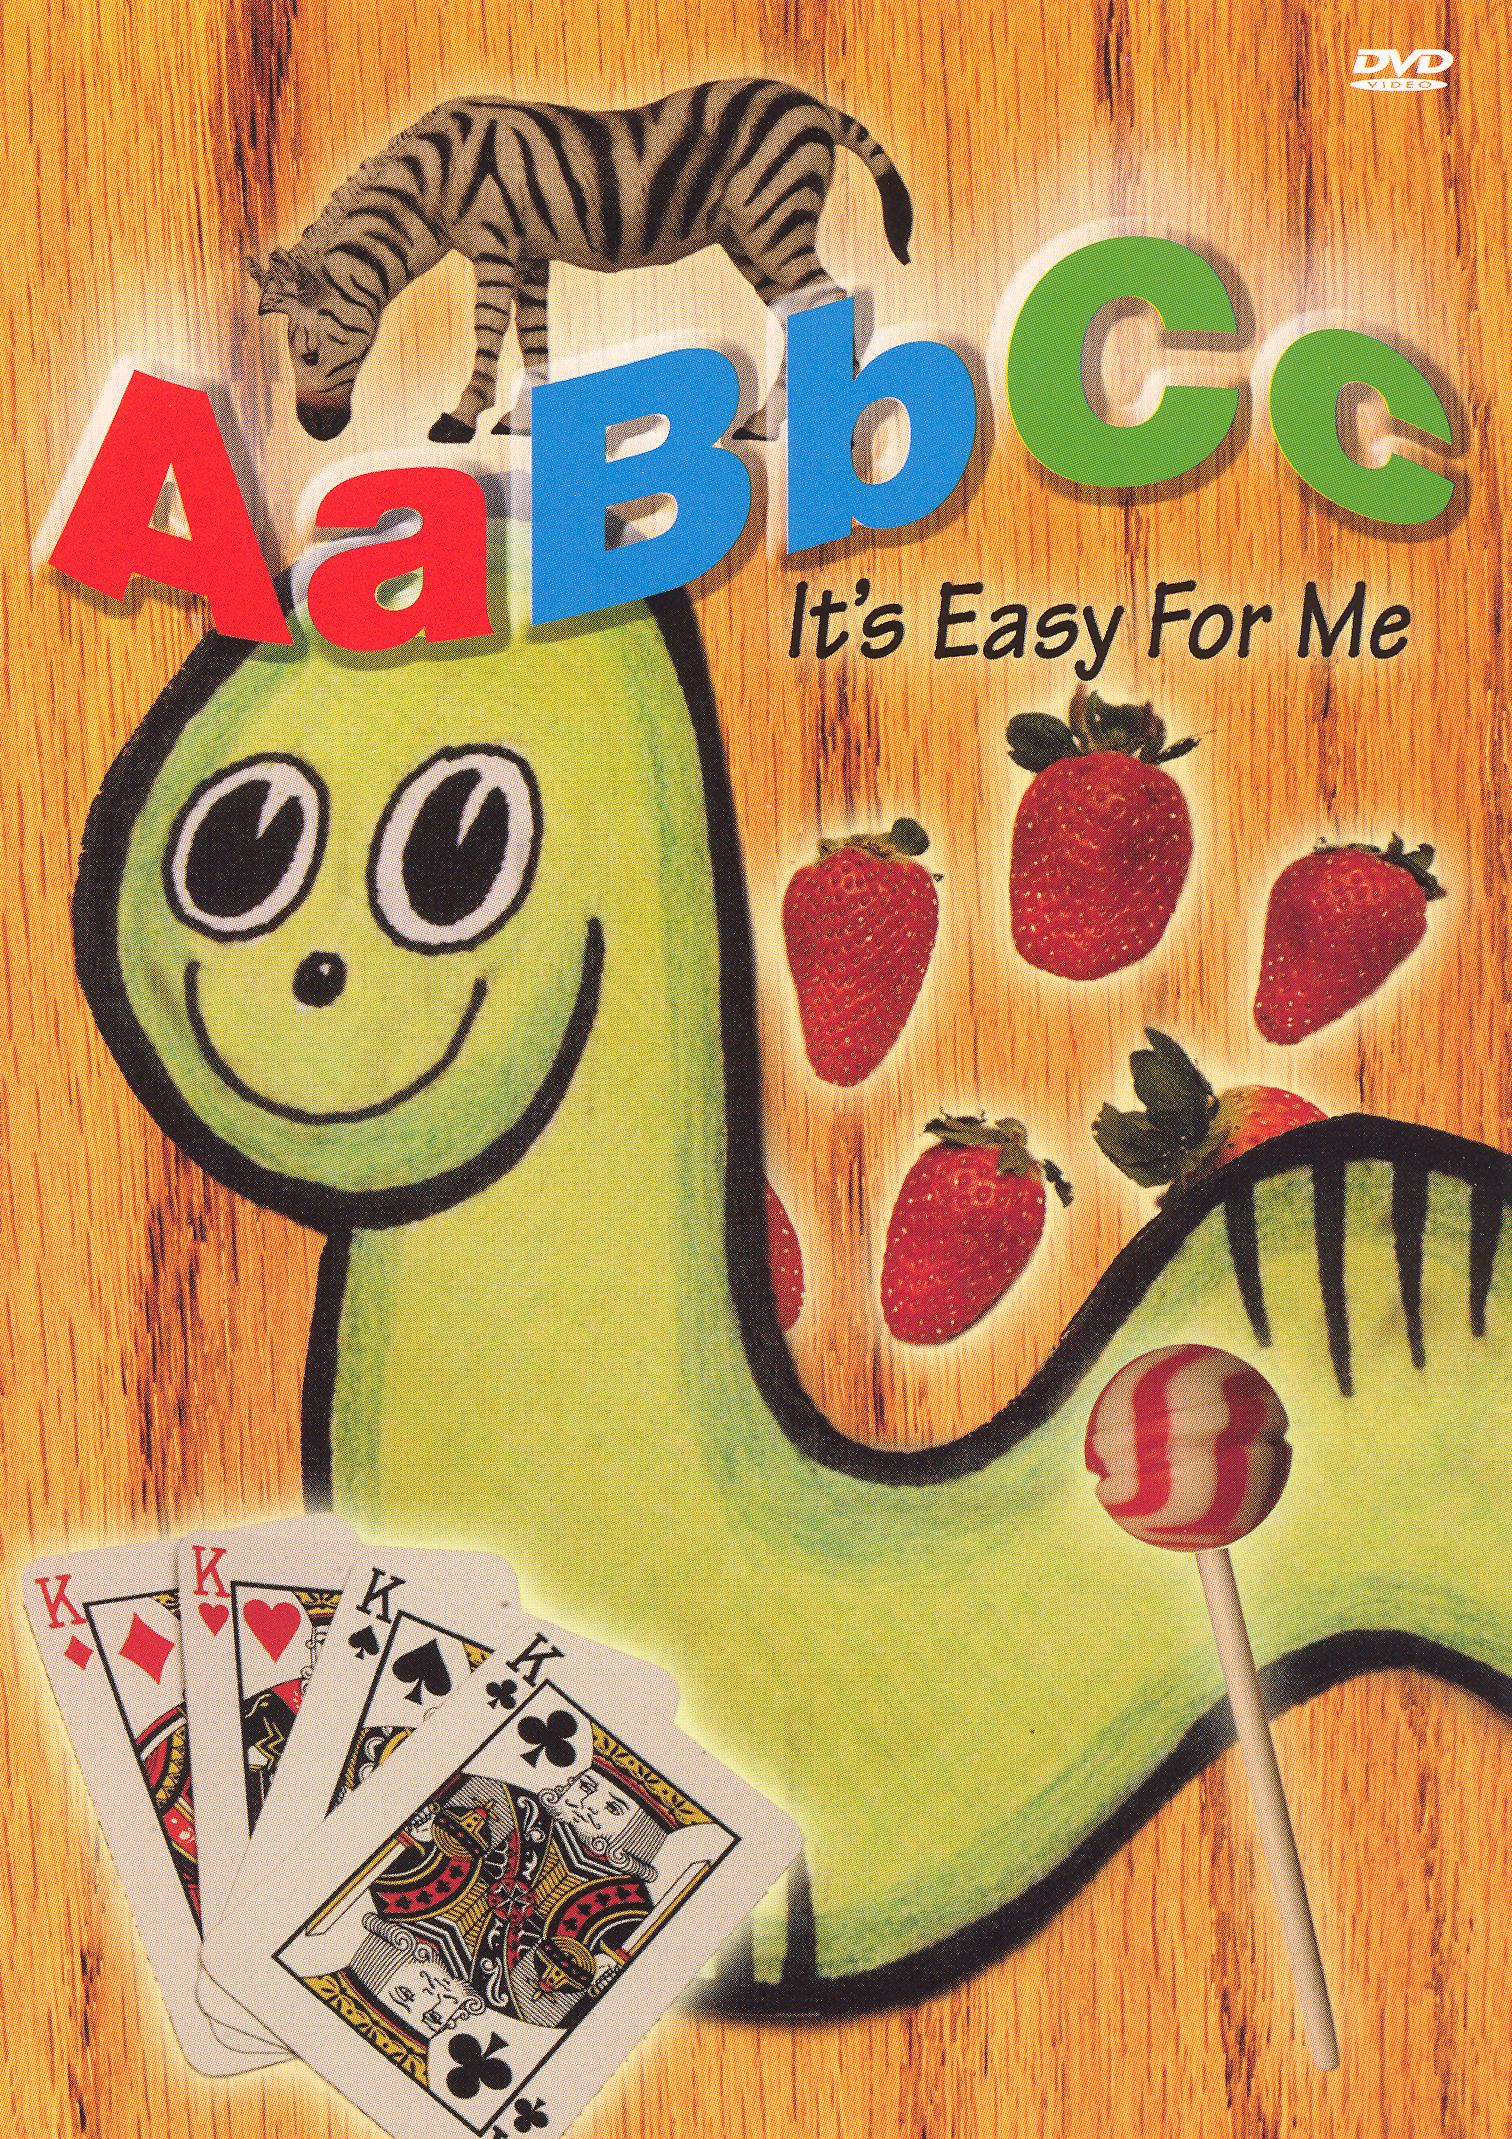 It's Easy For Me: ABC